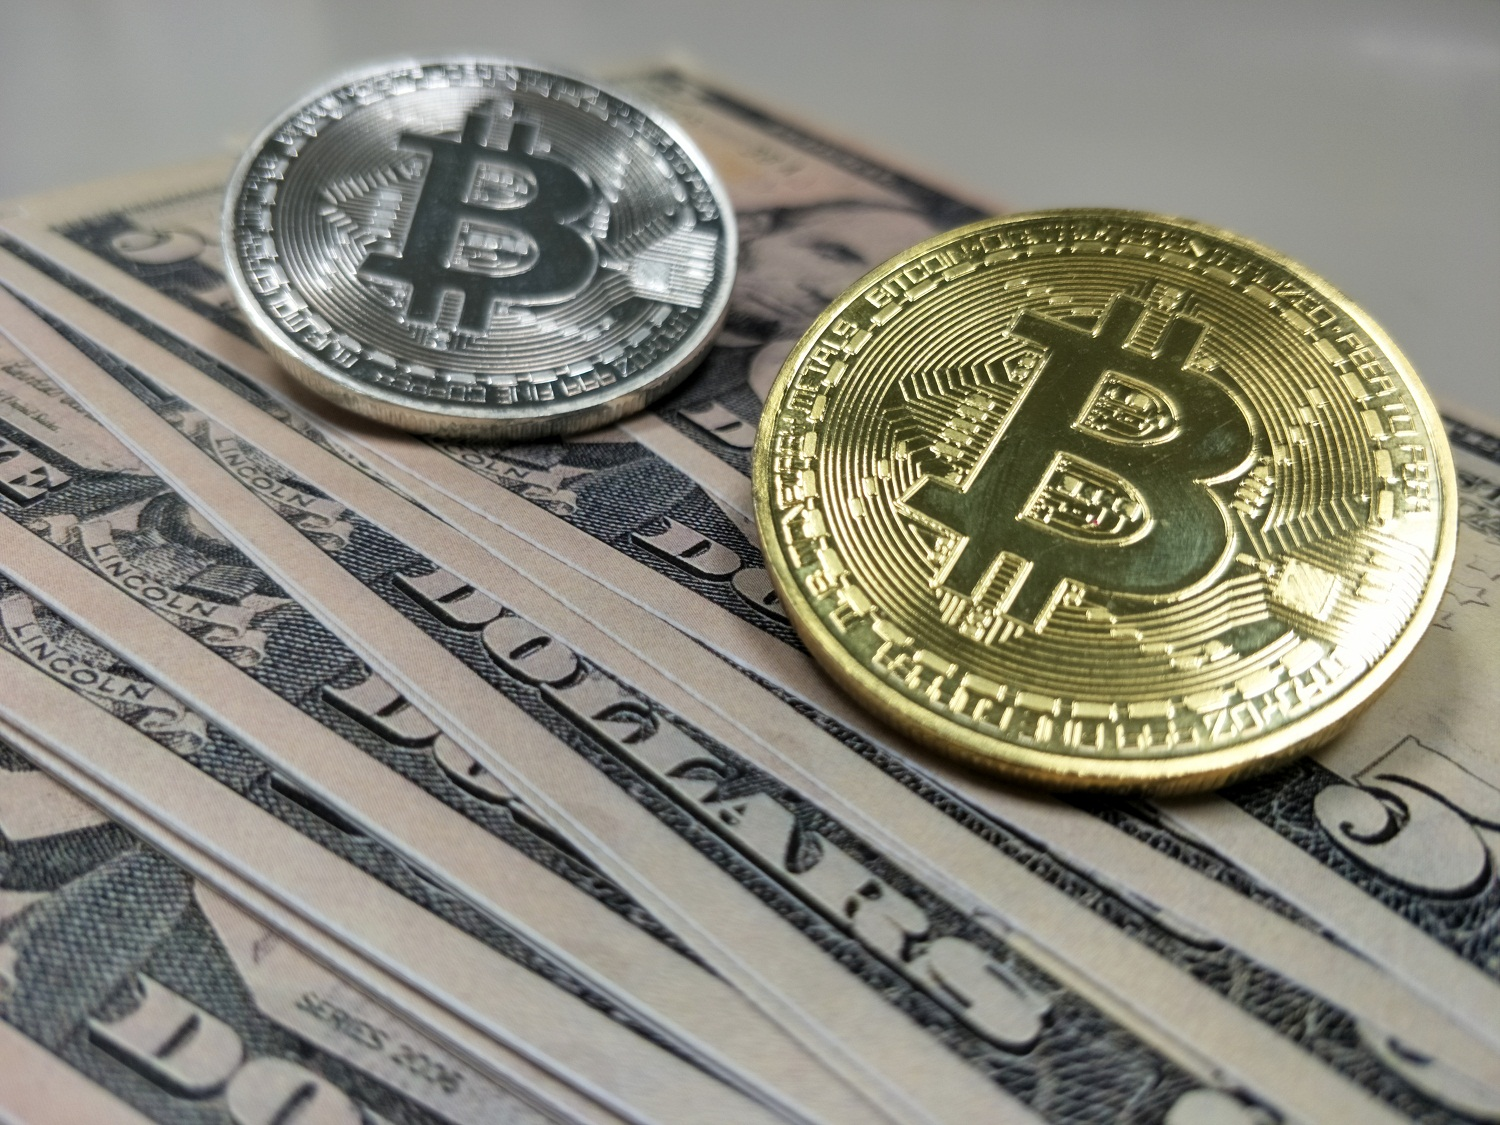 Exit Scams Swindled $3.1 Billion From Crypto Investors in 2019: Report